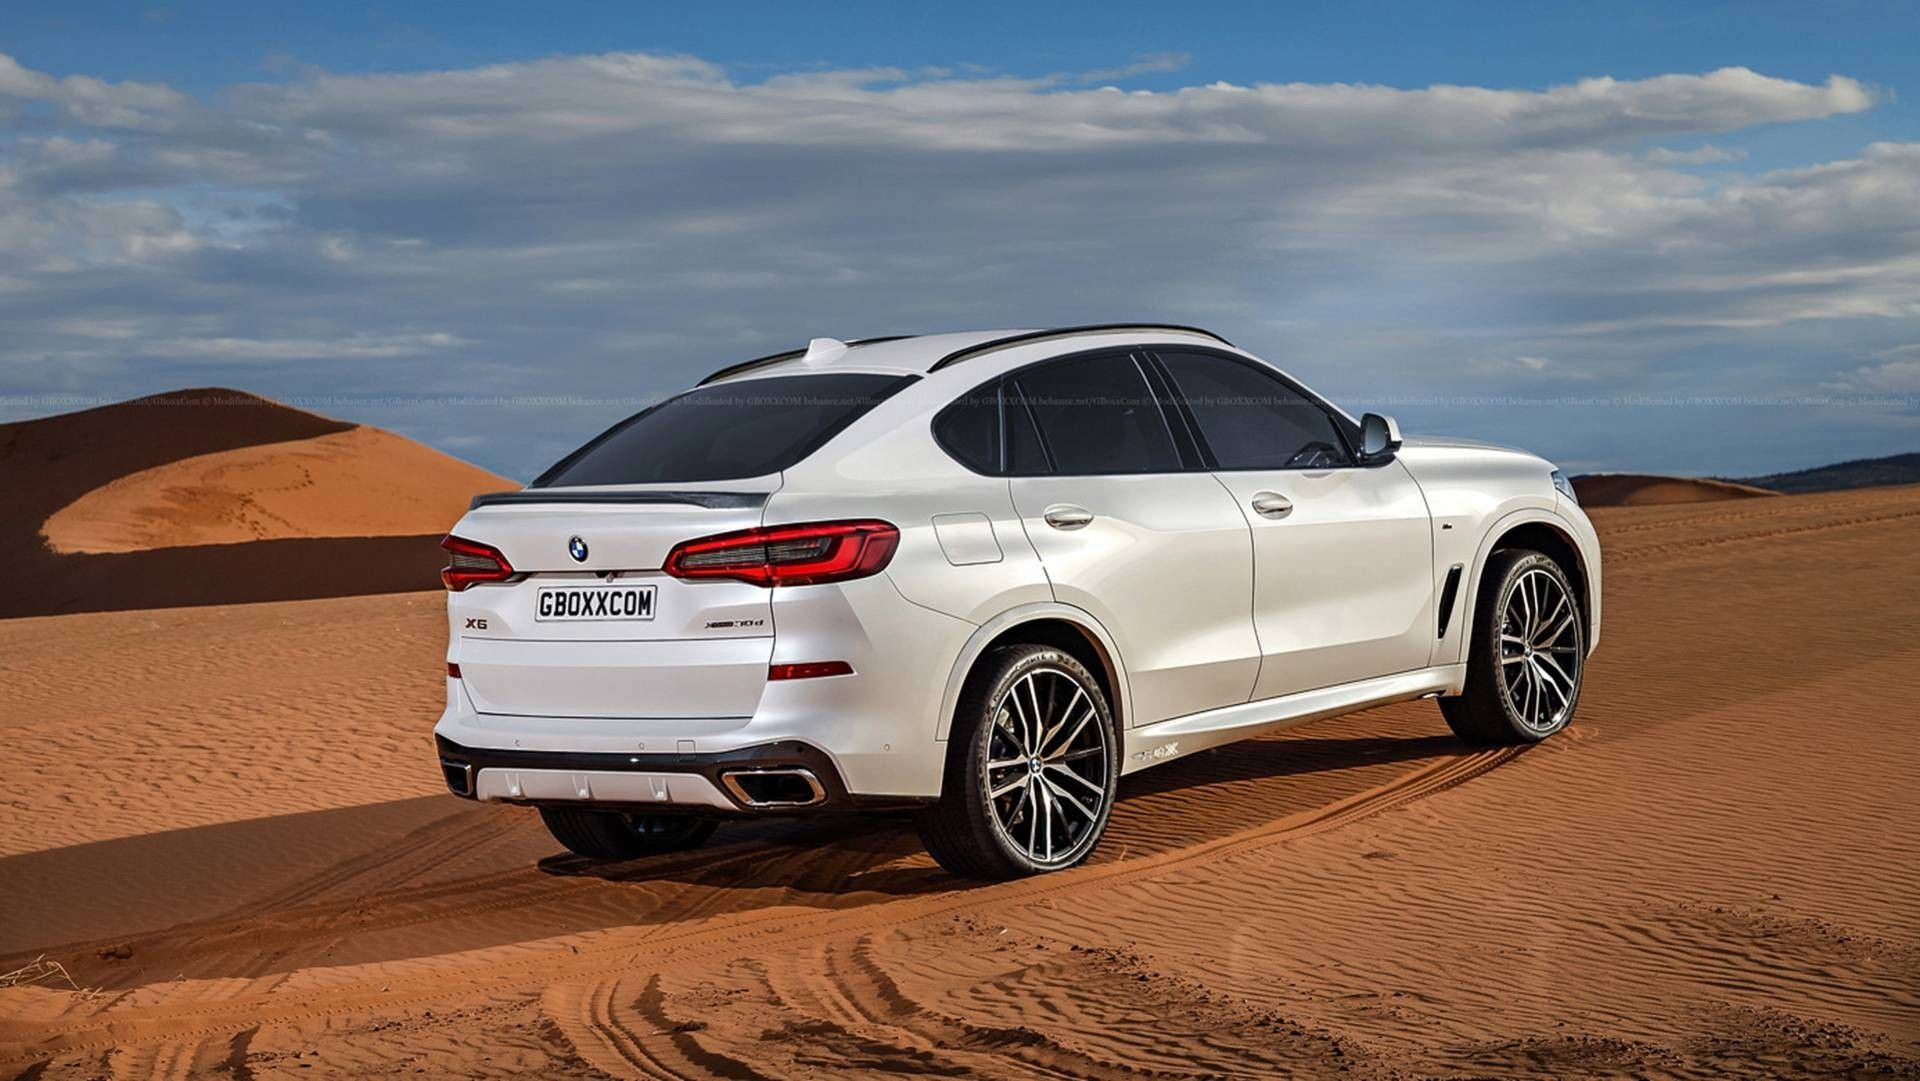 Bmw X6 2019 New Release With Images Bmw X6 Car Bmw